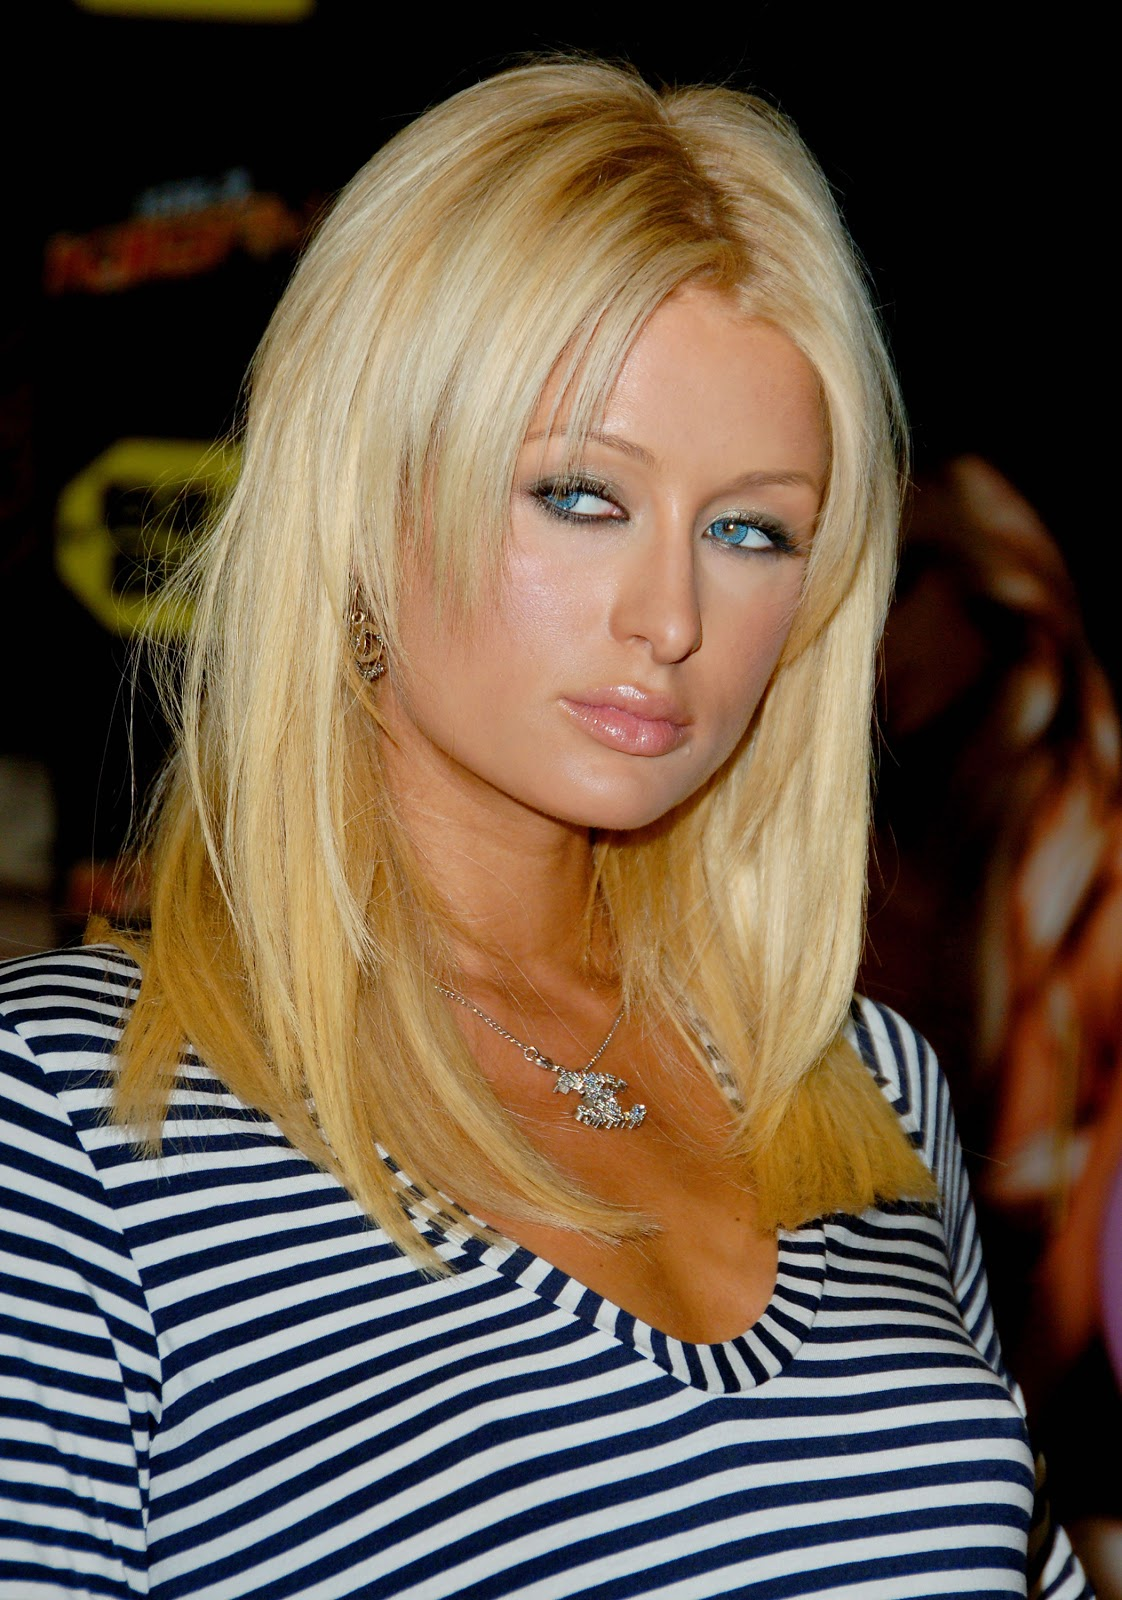 Latest Wallpapers Cars And Bikes Paris Hilton Hd Wallpapers High Definition Free